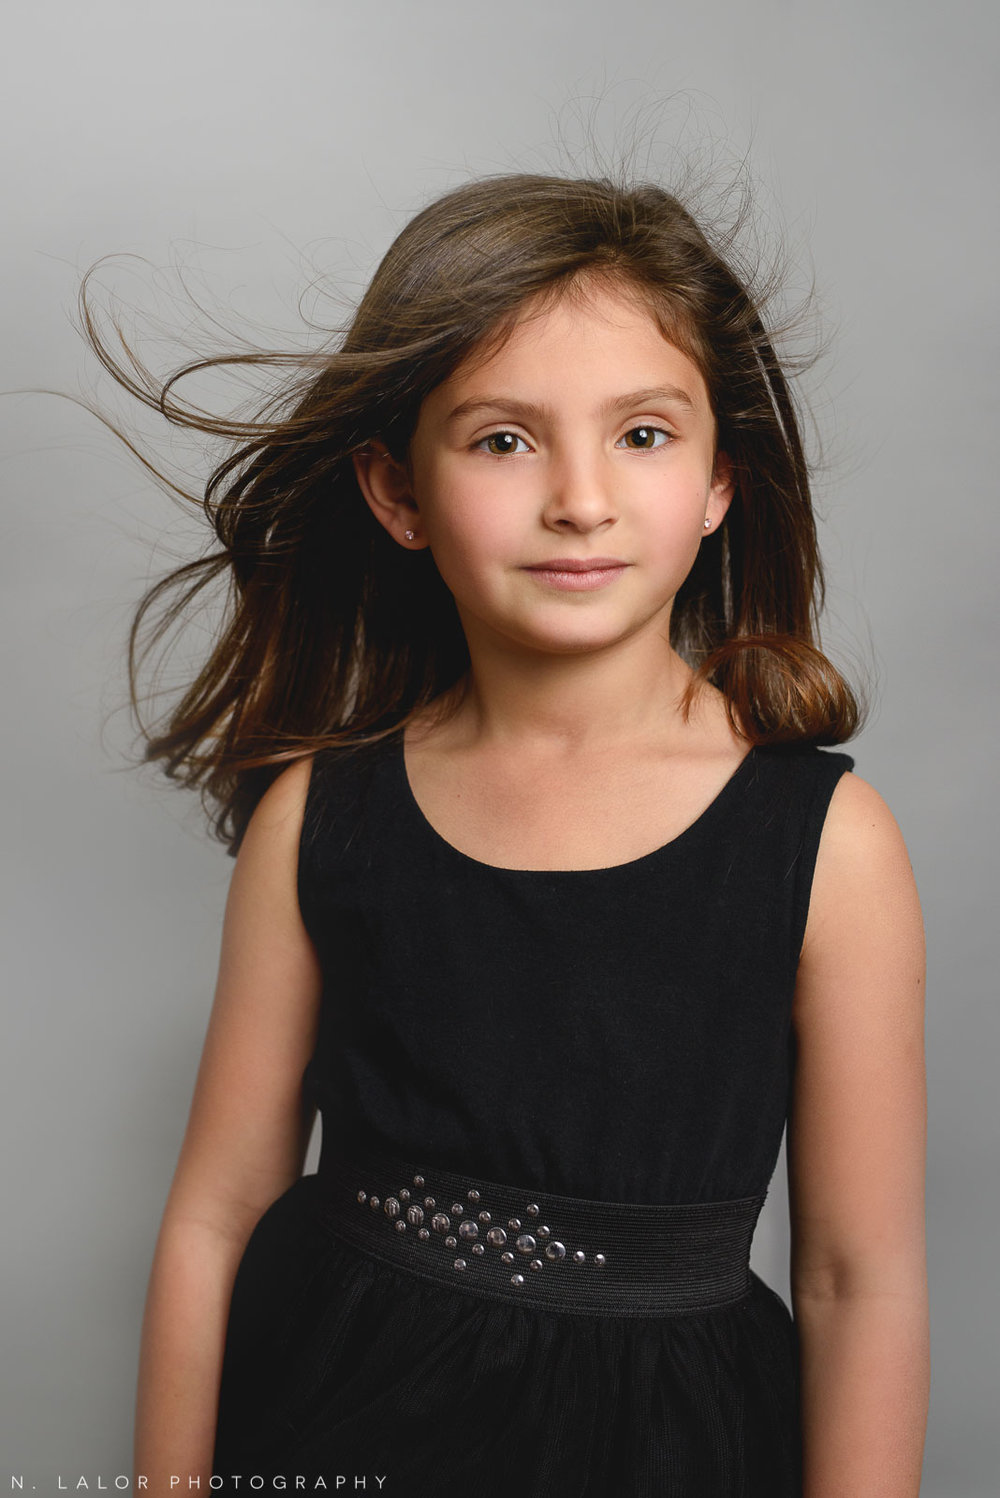 Beautiful young girl. Simple studio portrait by N. Lalor Photography. Taken in New Canaan, CT.